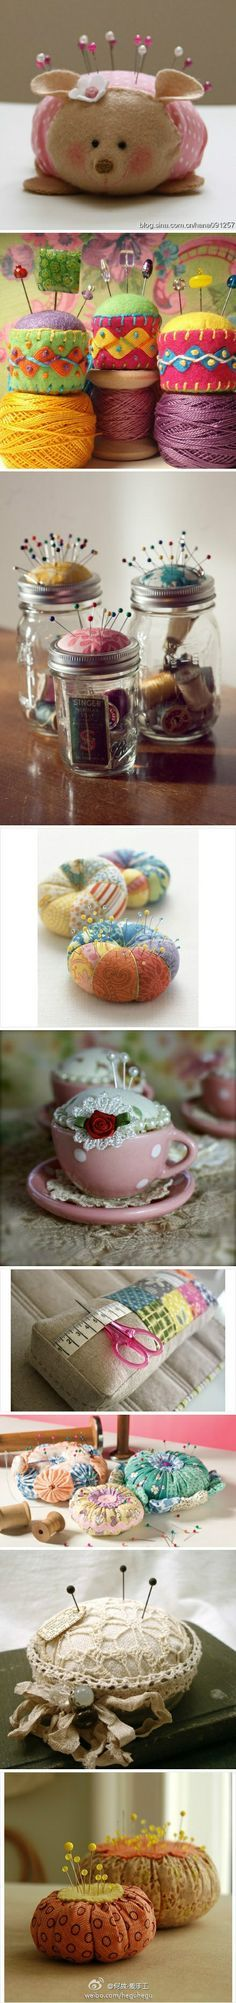 DIY pincushions                                    THERE IS A PINCUSHION HERE  MADE USING A MASON JAR THAT INCLUDES A STORAGE AREA       M